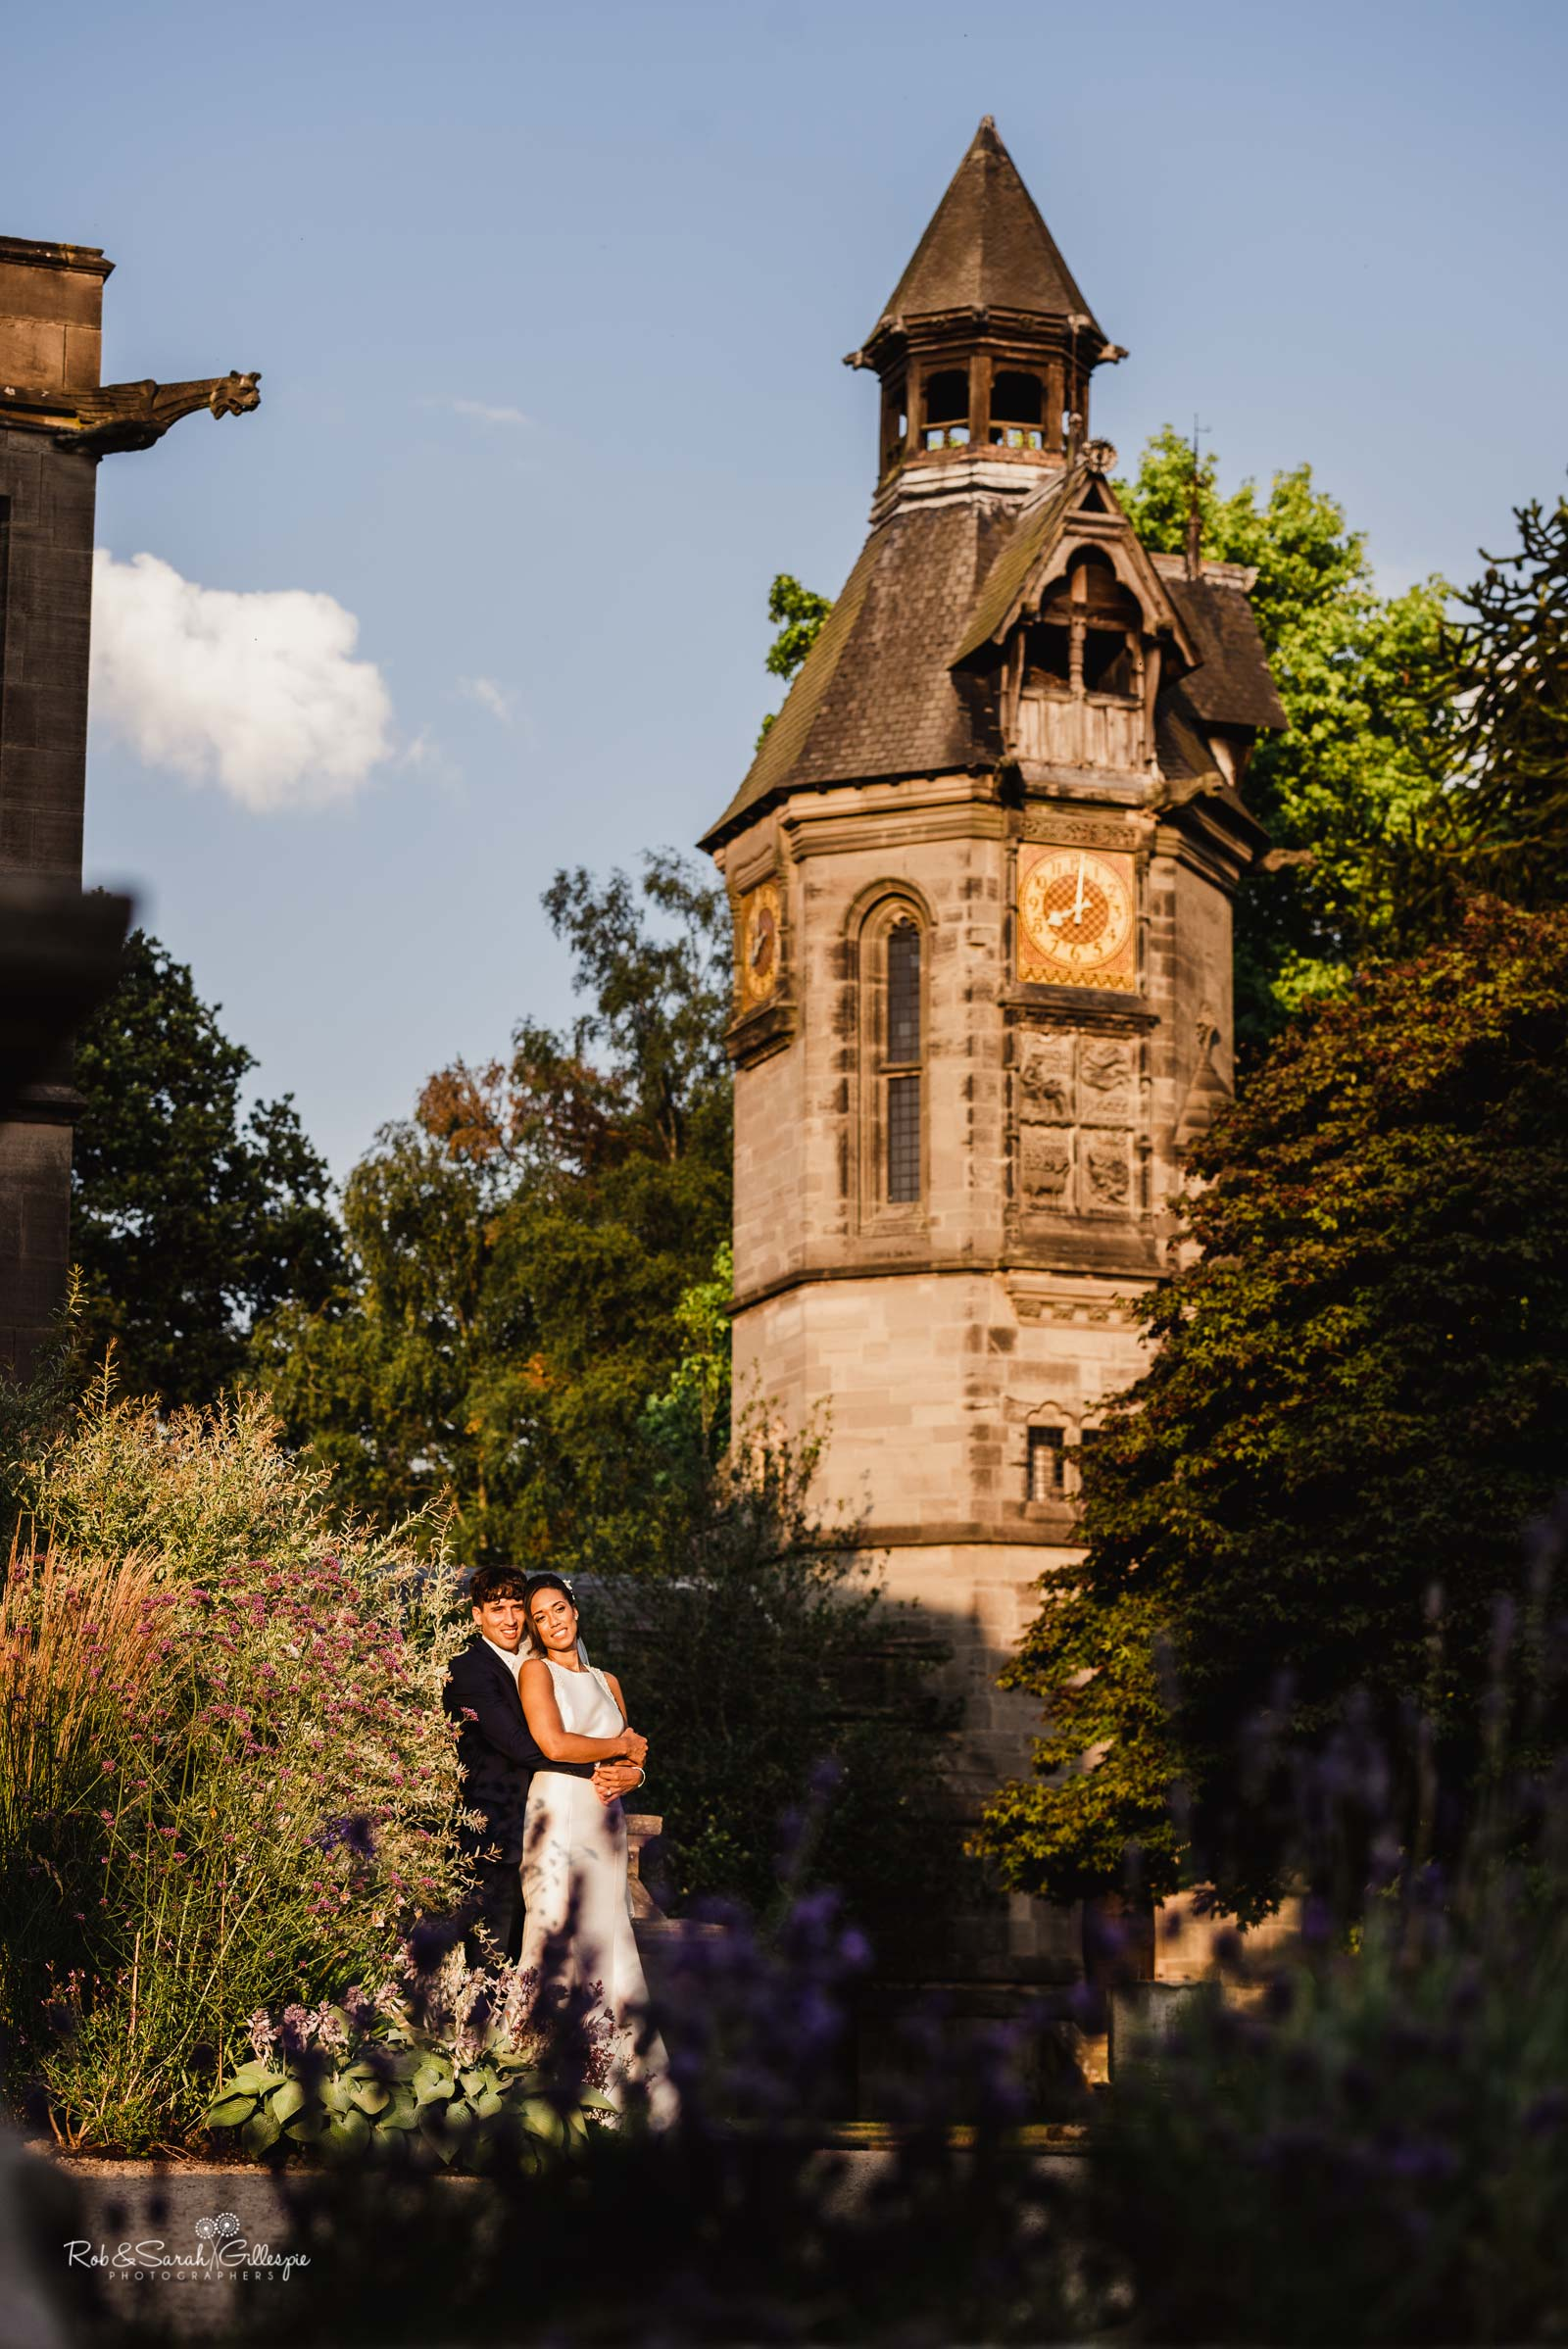 Hampton Manor clock tower with bride and groom